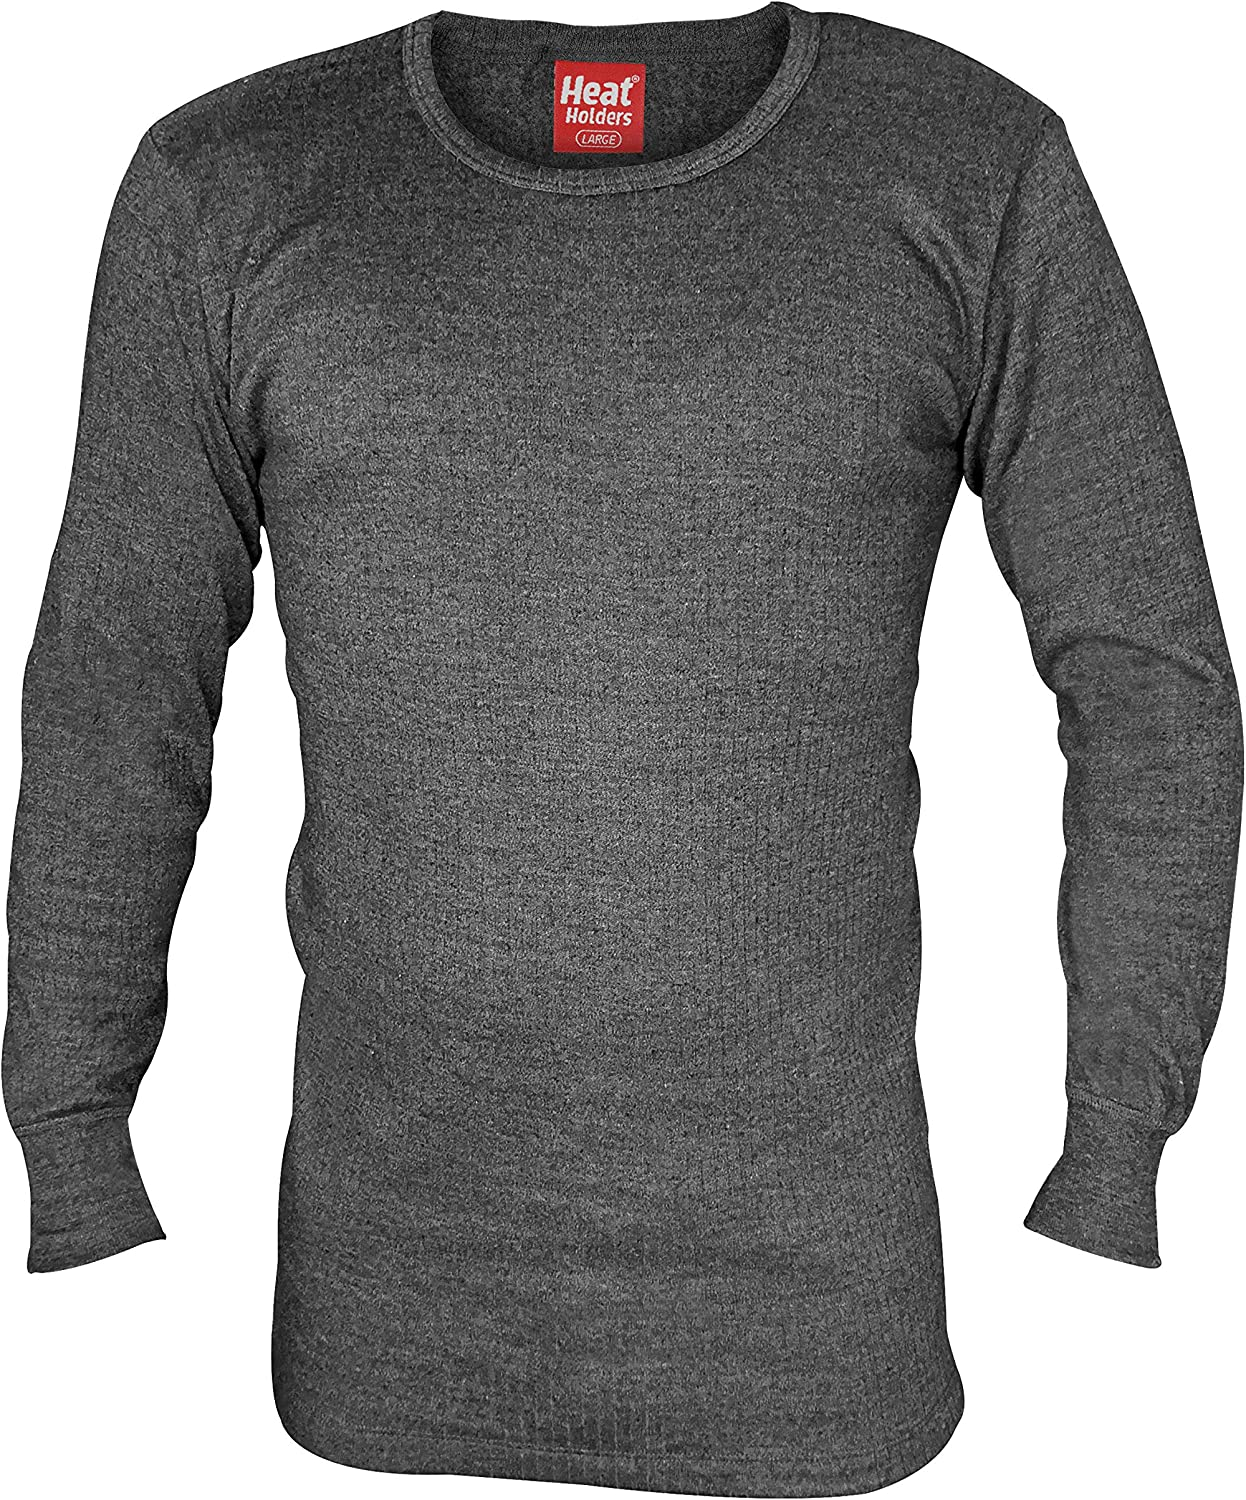 HEAT HOLDERS Mens Cotton Thermal Vest Long Sleeved Charcoal Medium 38-40